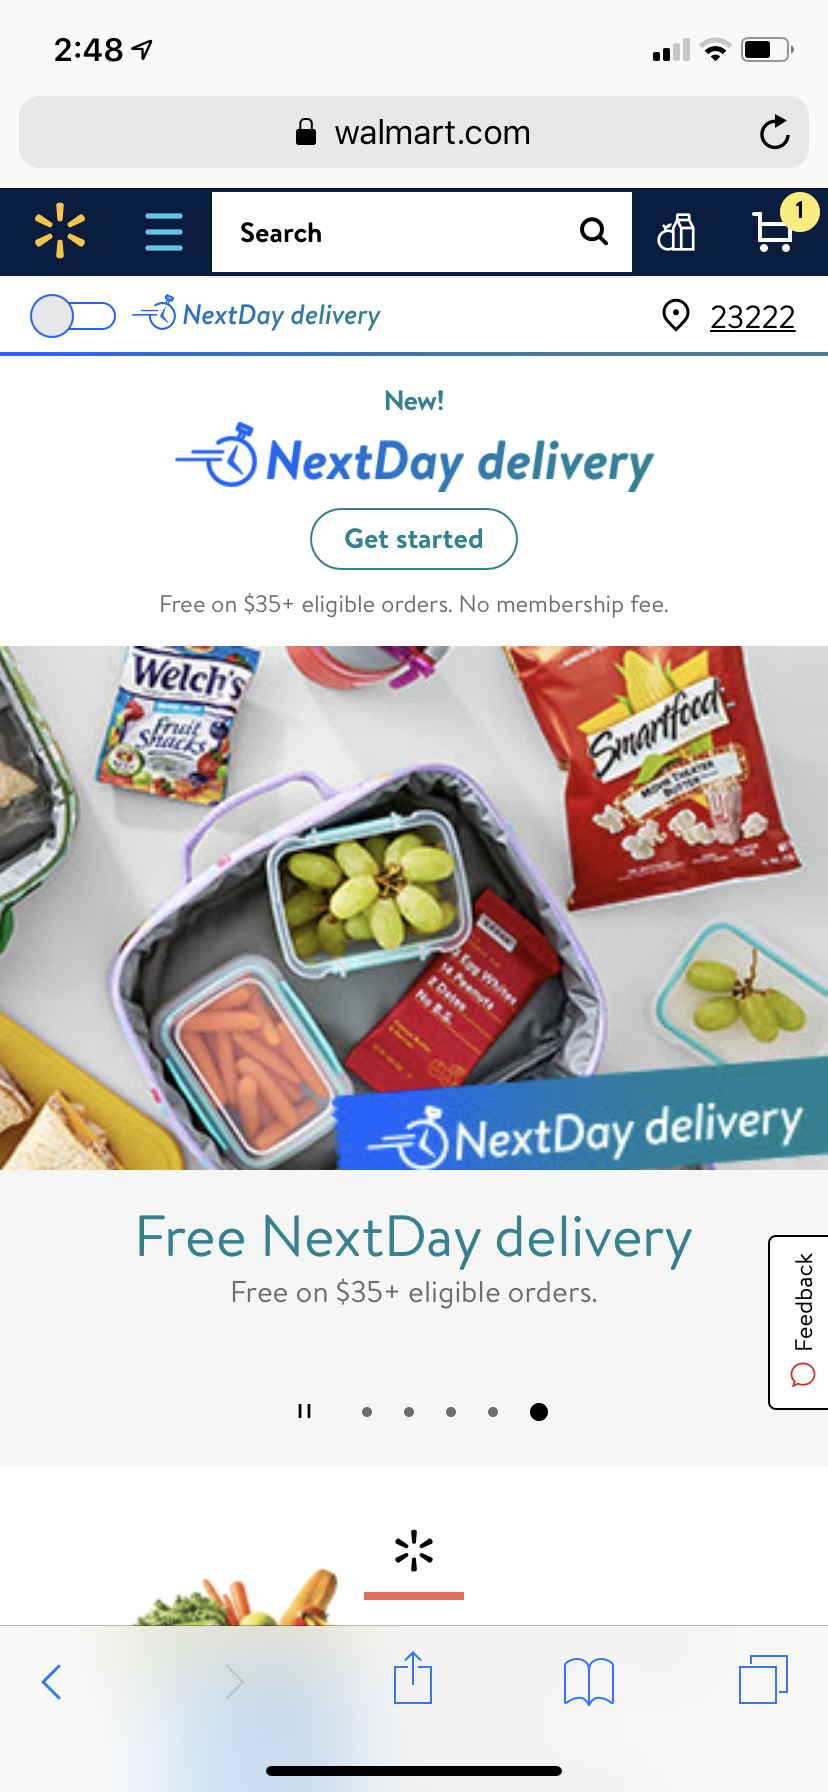 Walmart-Next-Day-Delivery-Screenshot.PNG